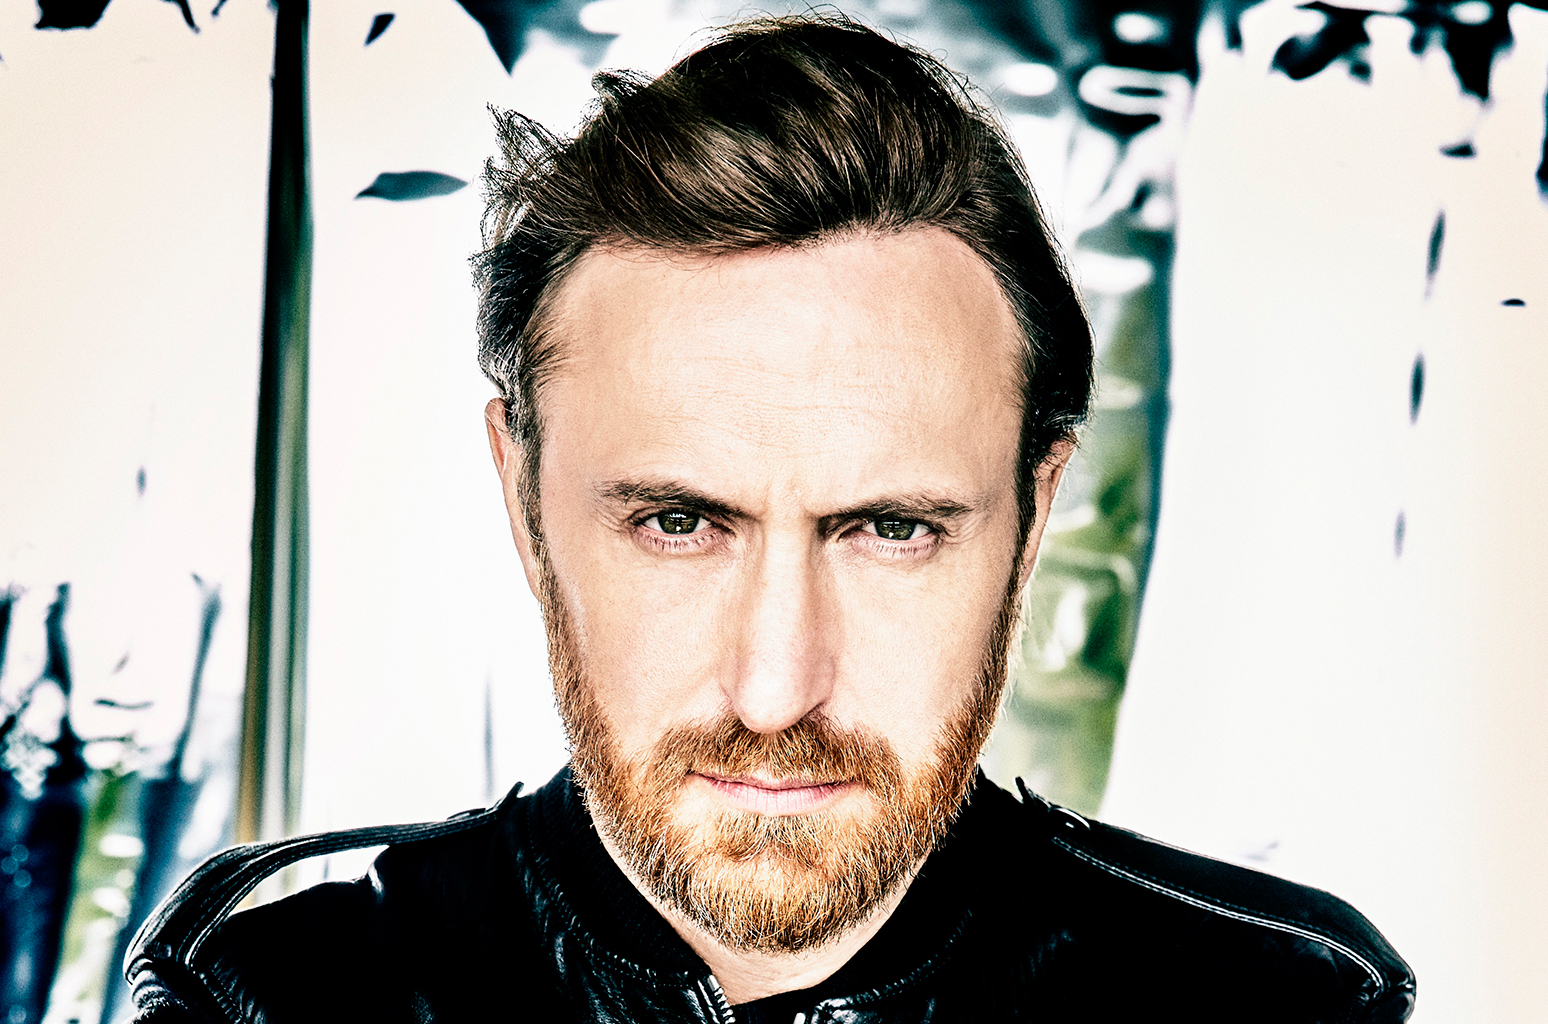 David Guetta, Brooks & Loote Padukan Country & Big Room Dalam 'Better When You're Gone'